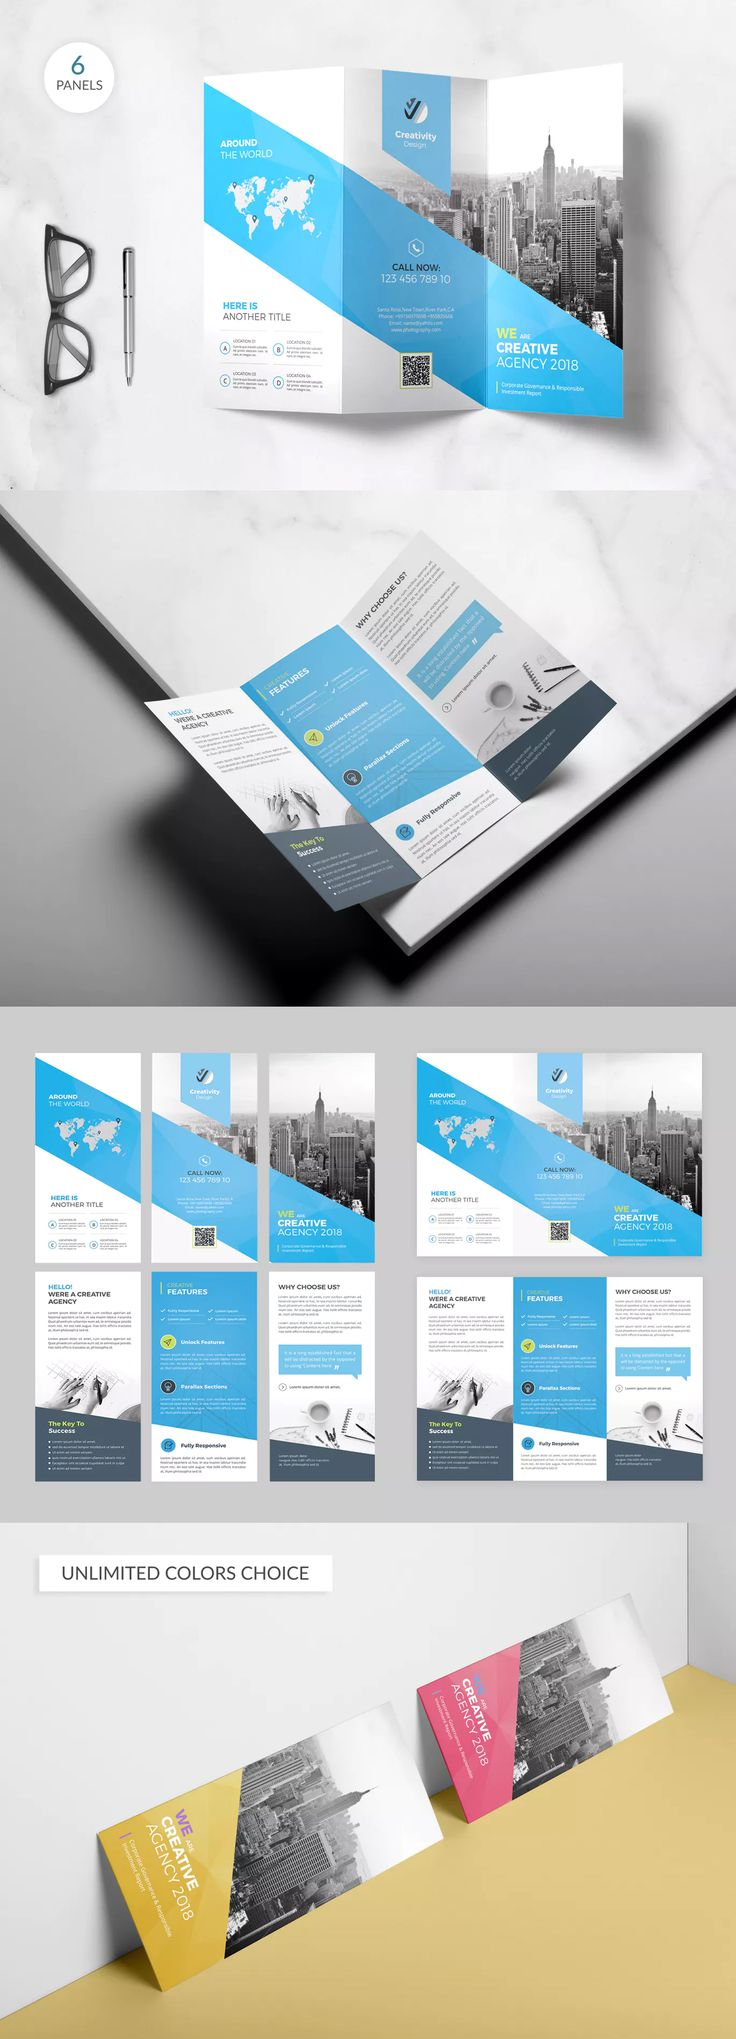 Trifold Brochure Template PSD - A4 - This template gives you a powerful source of information in a great look to have a strong, visually pleasing brand, easy to edit text, images, and elements.